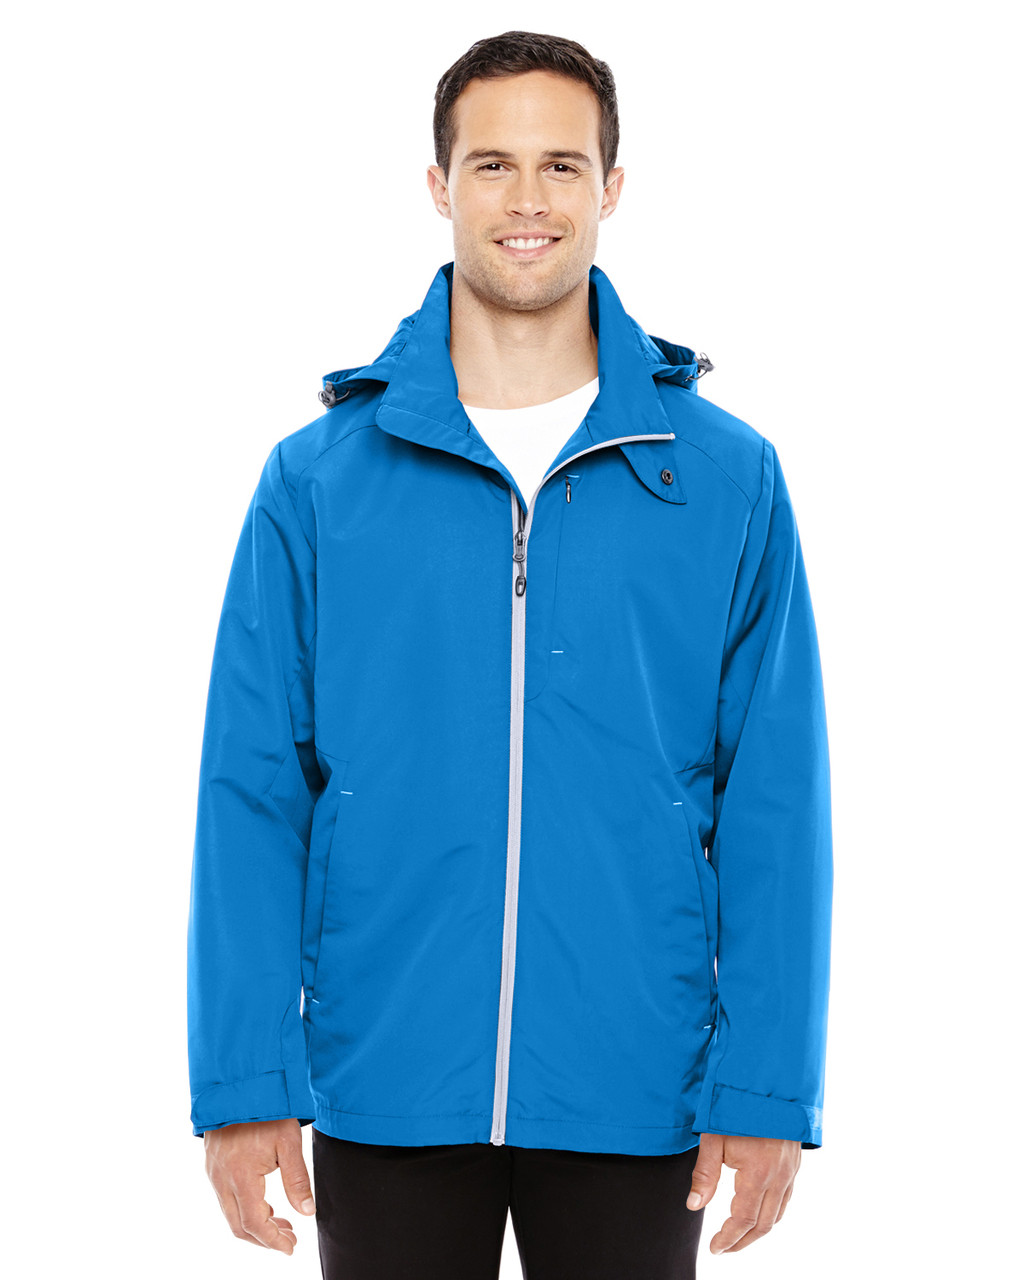 Nautical Blue/Platinum - 88226 North End Men's Insight Interactive Shell Jacket | Blankclothing.ca